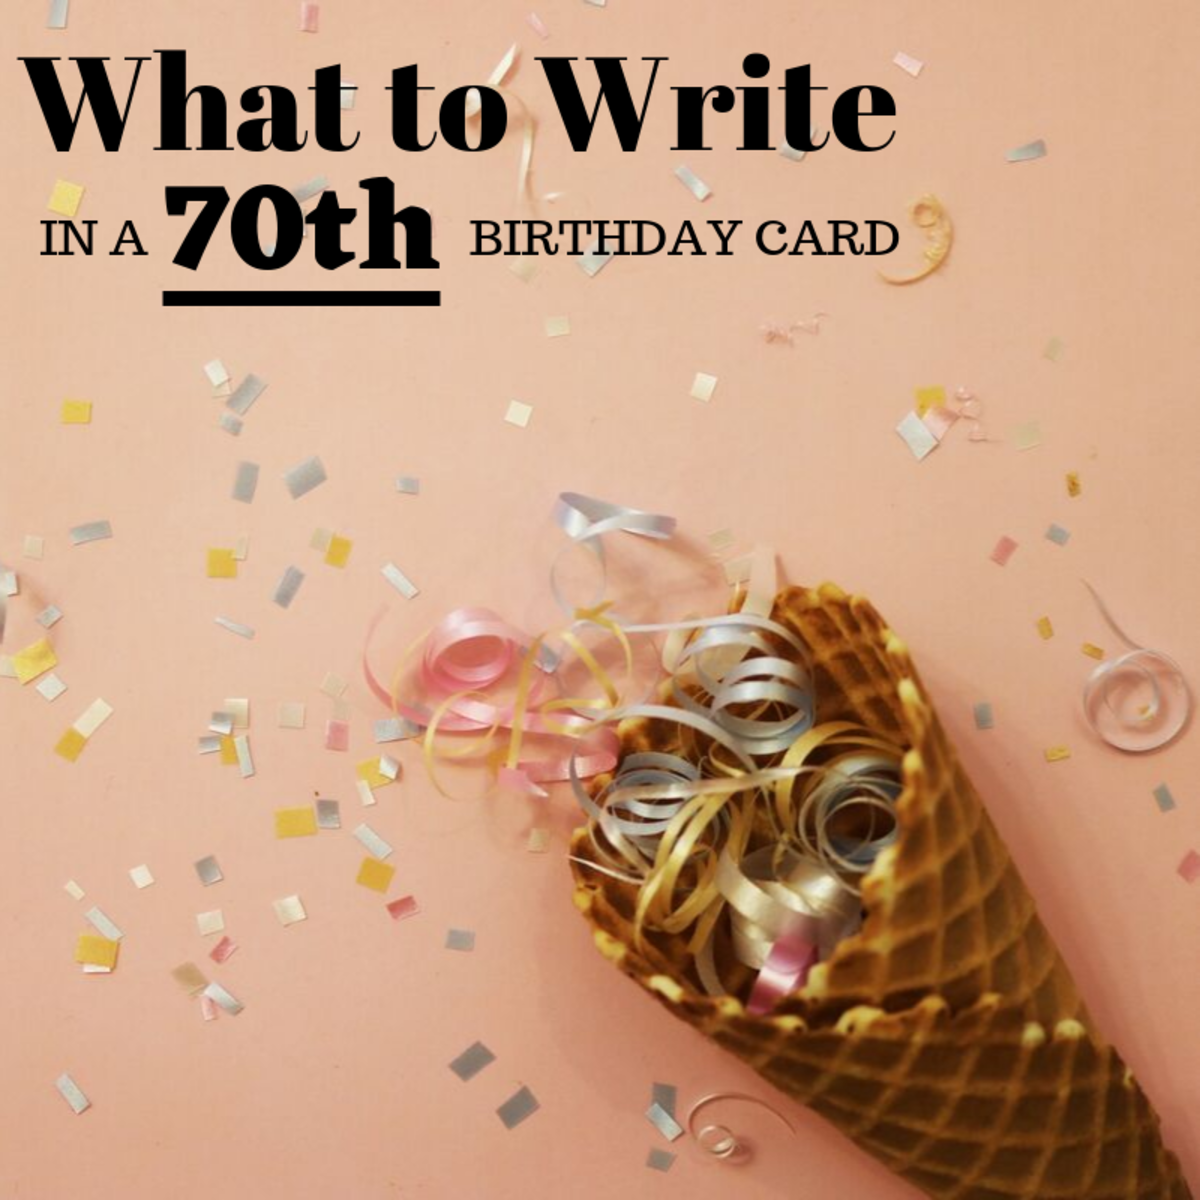 70 is a major milestone! Wish them well with a funny and heartfelt birthday card message.